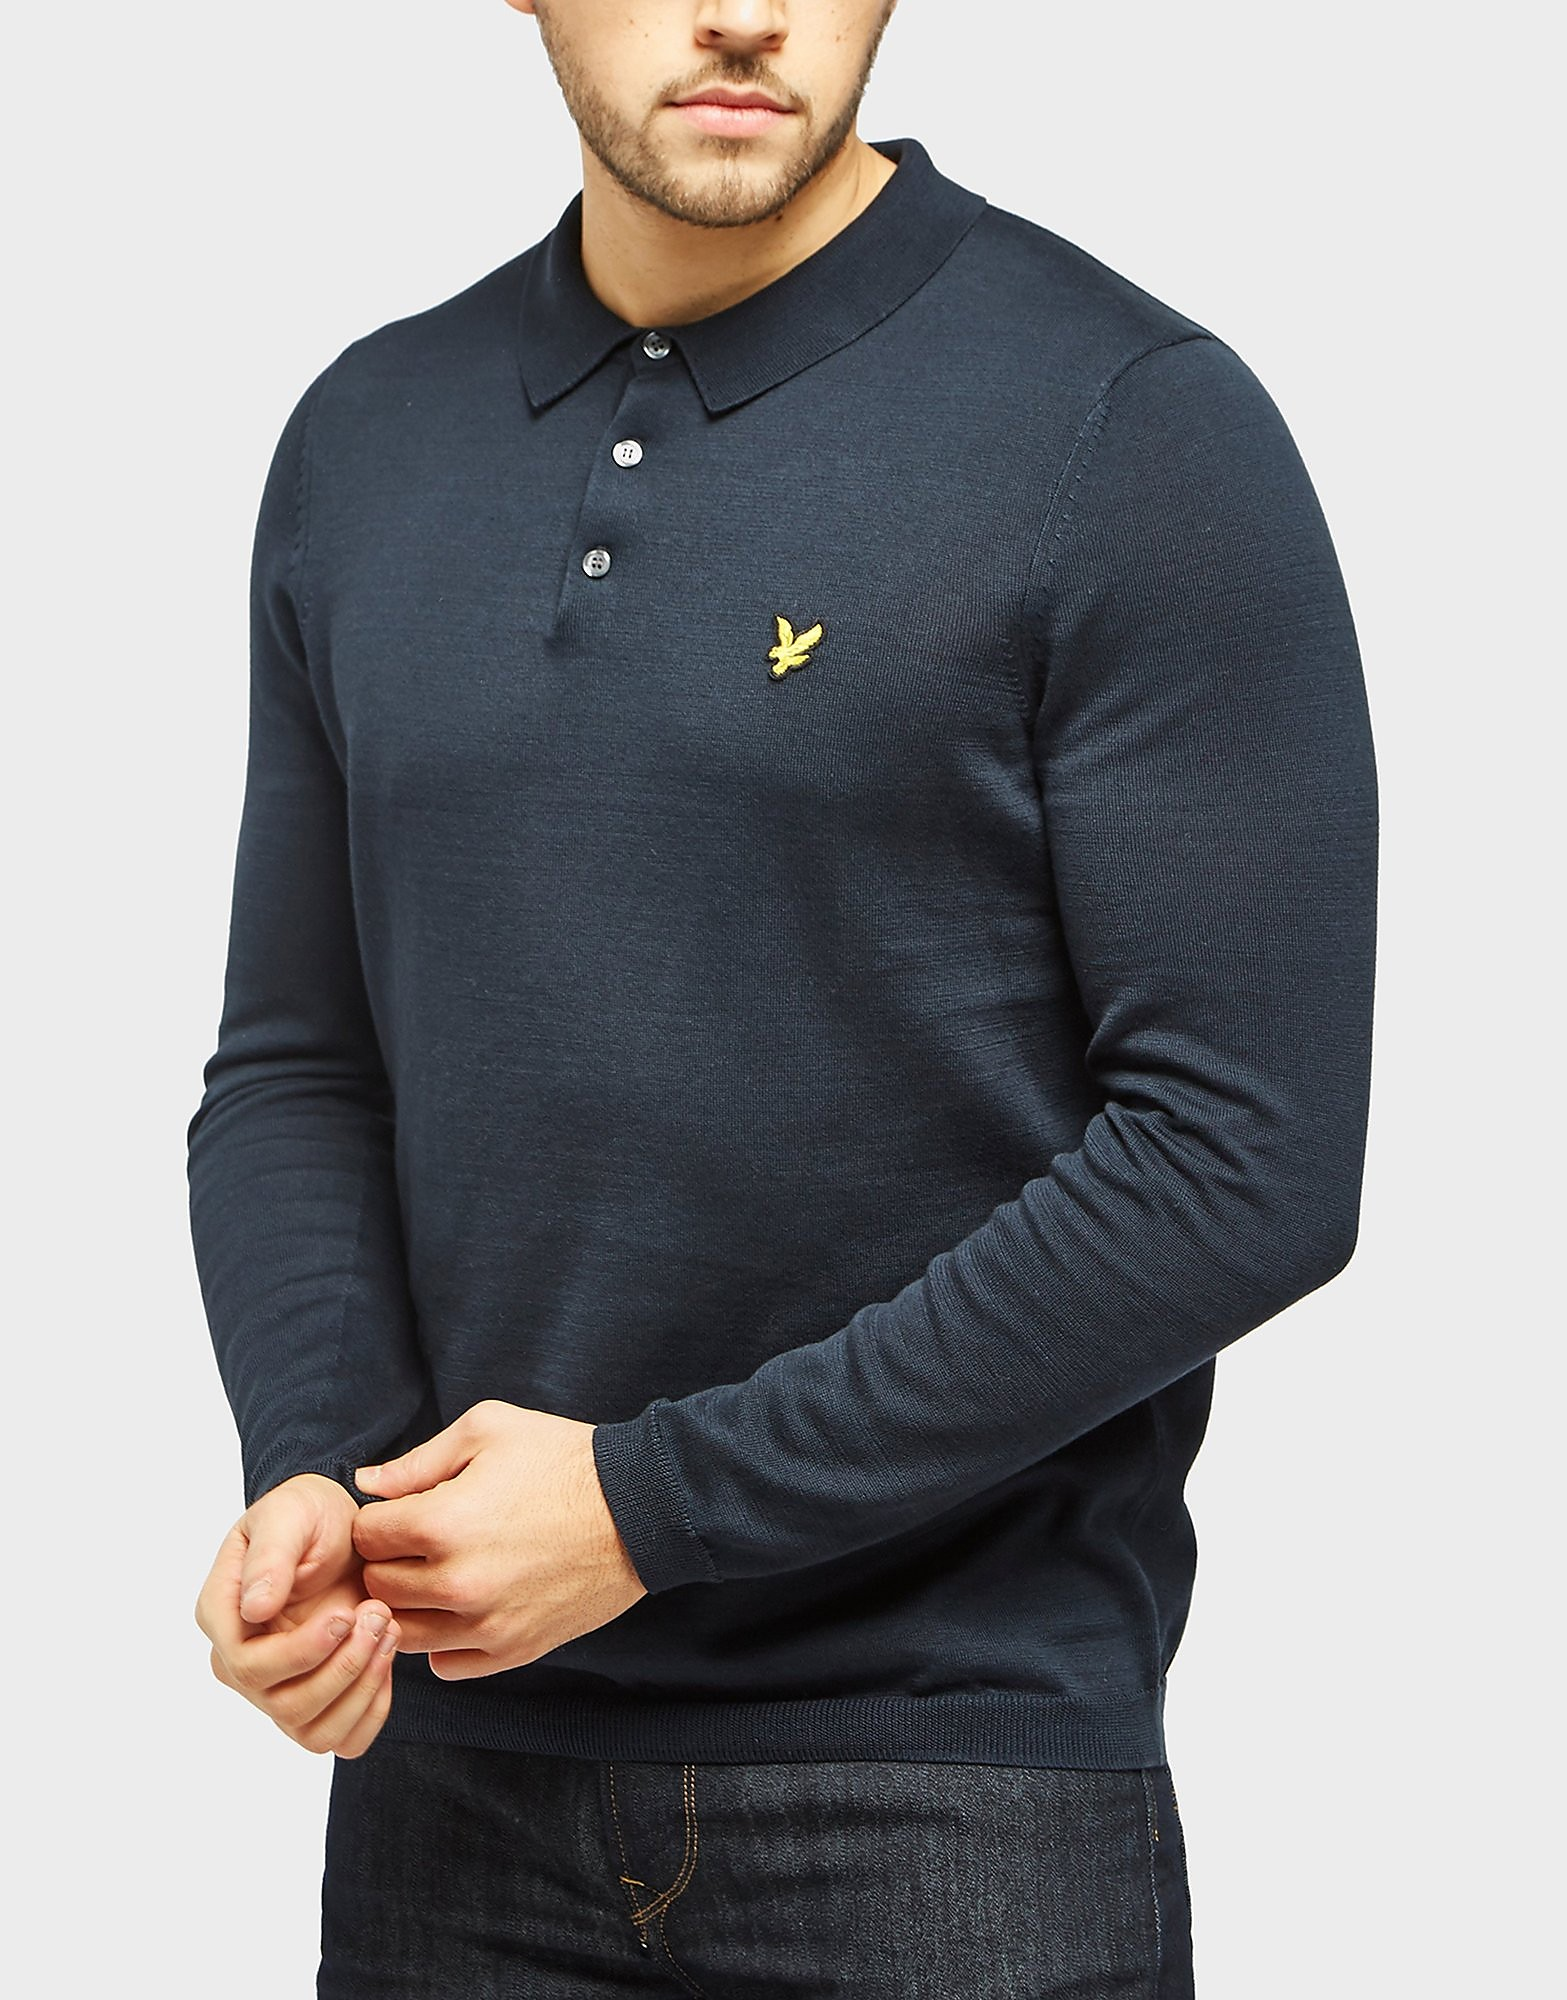 Lyle & Scott Long Sleeve Knit Polo Shirt